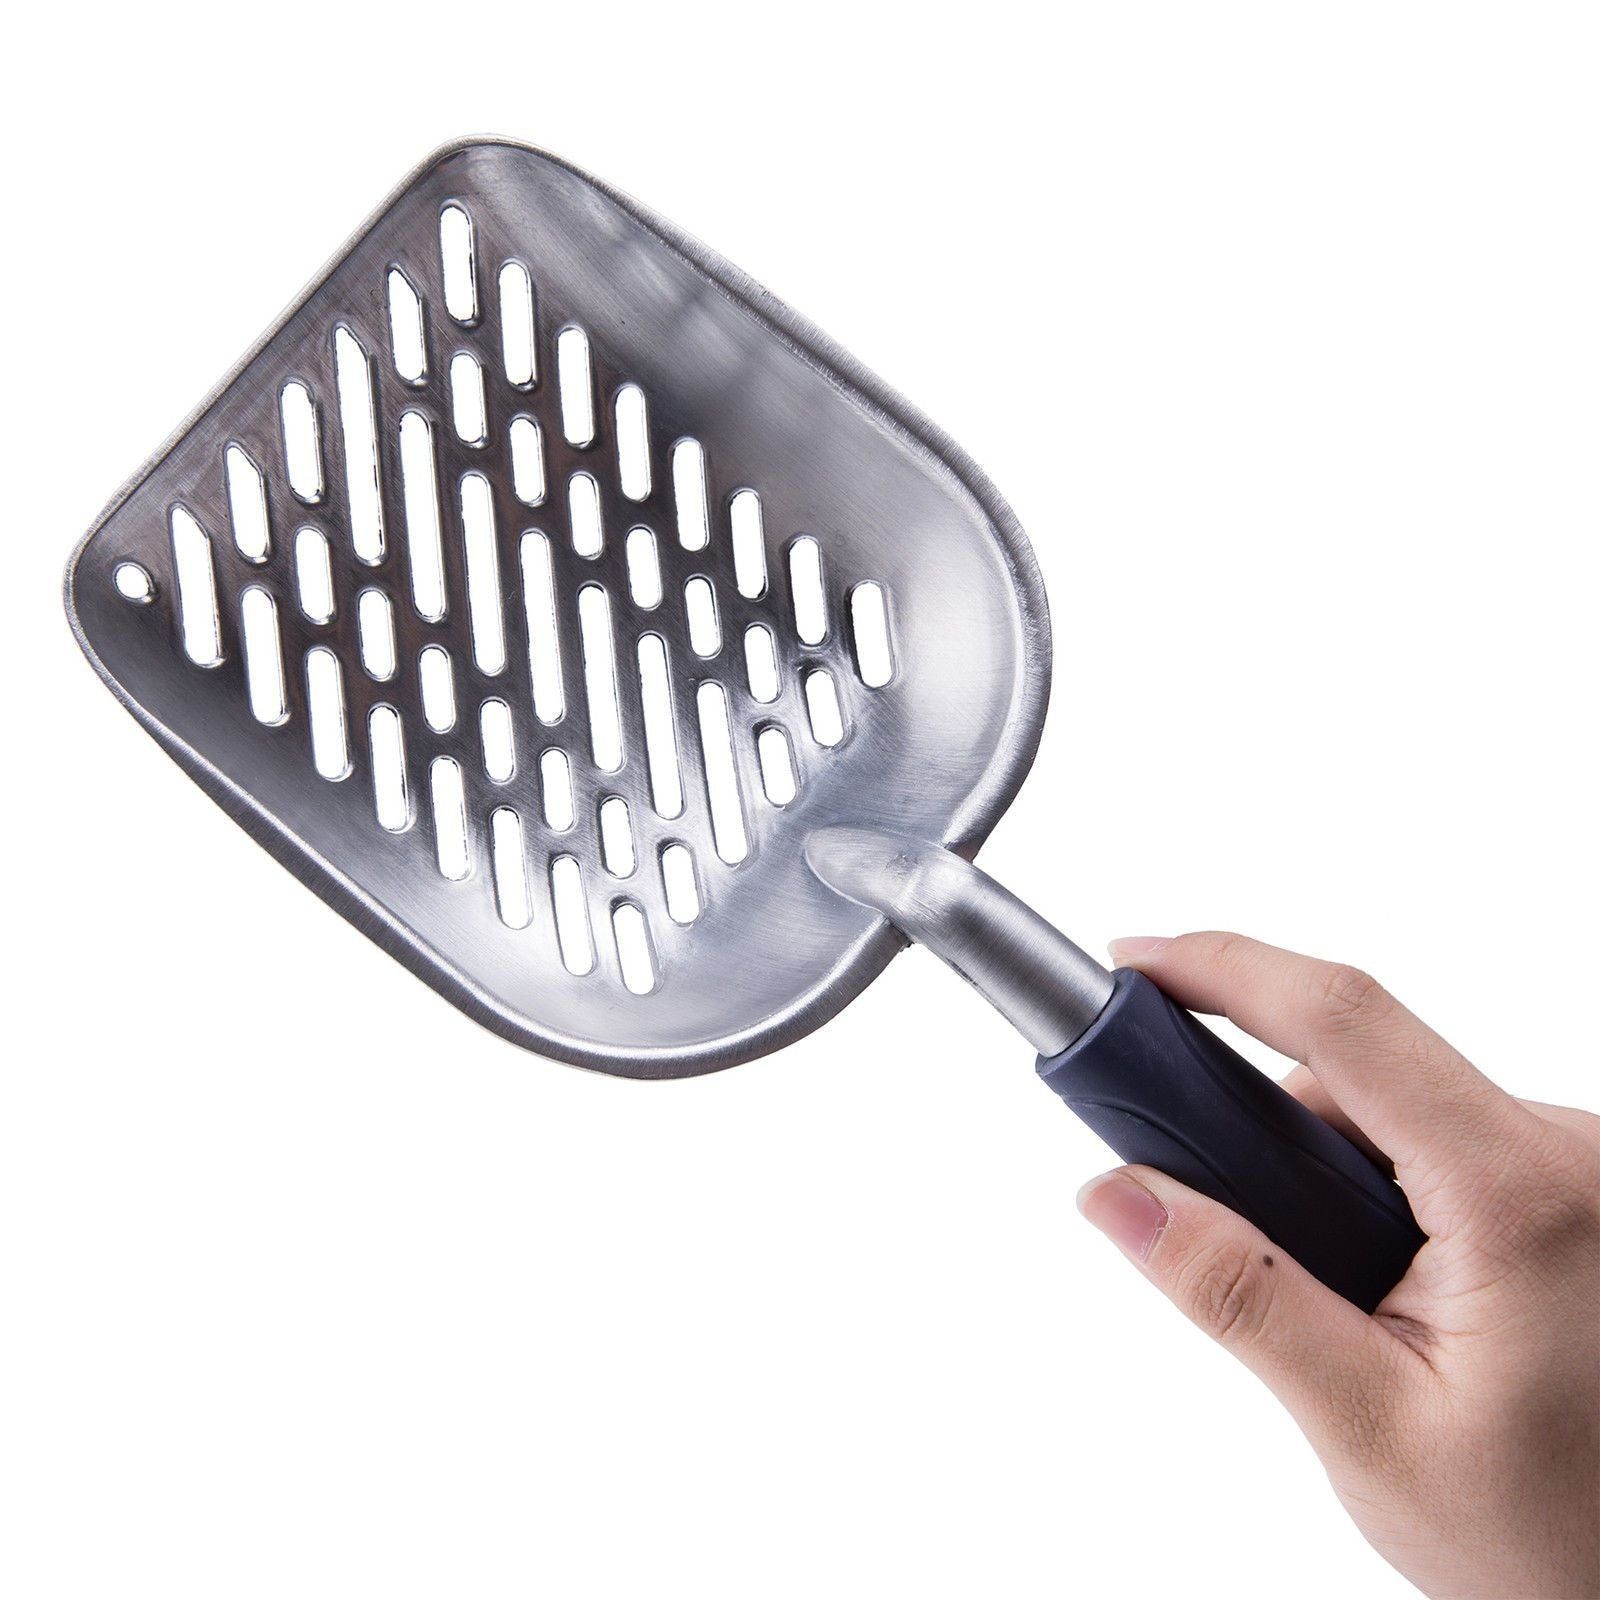 cutecatslovers Portable Stainless Steel Cat Litter Box Poop Scoop, Very Durable